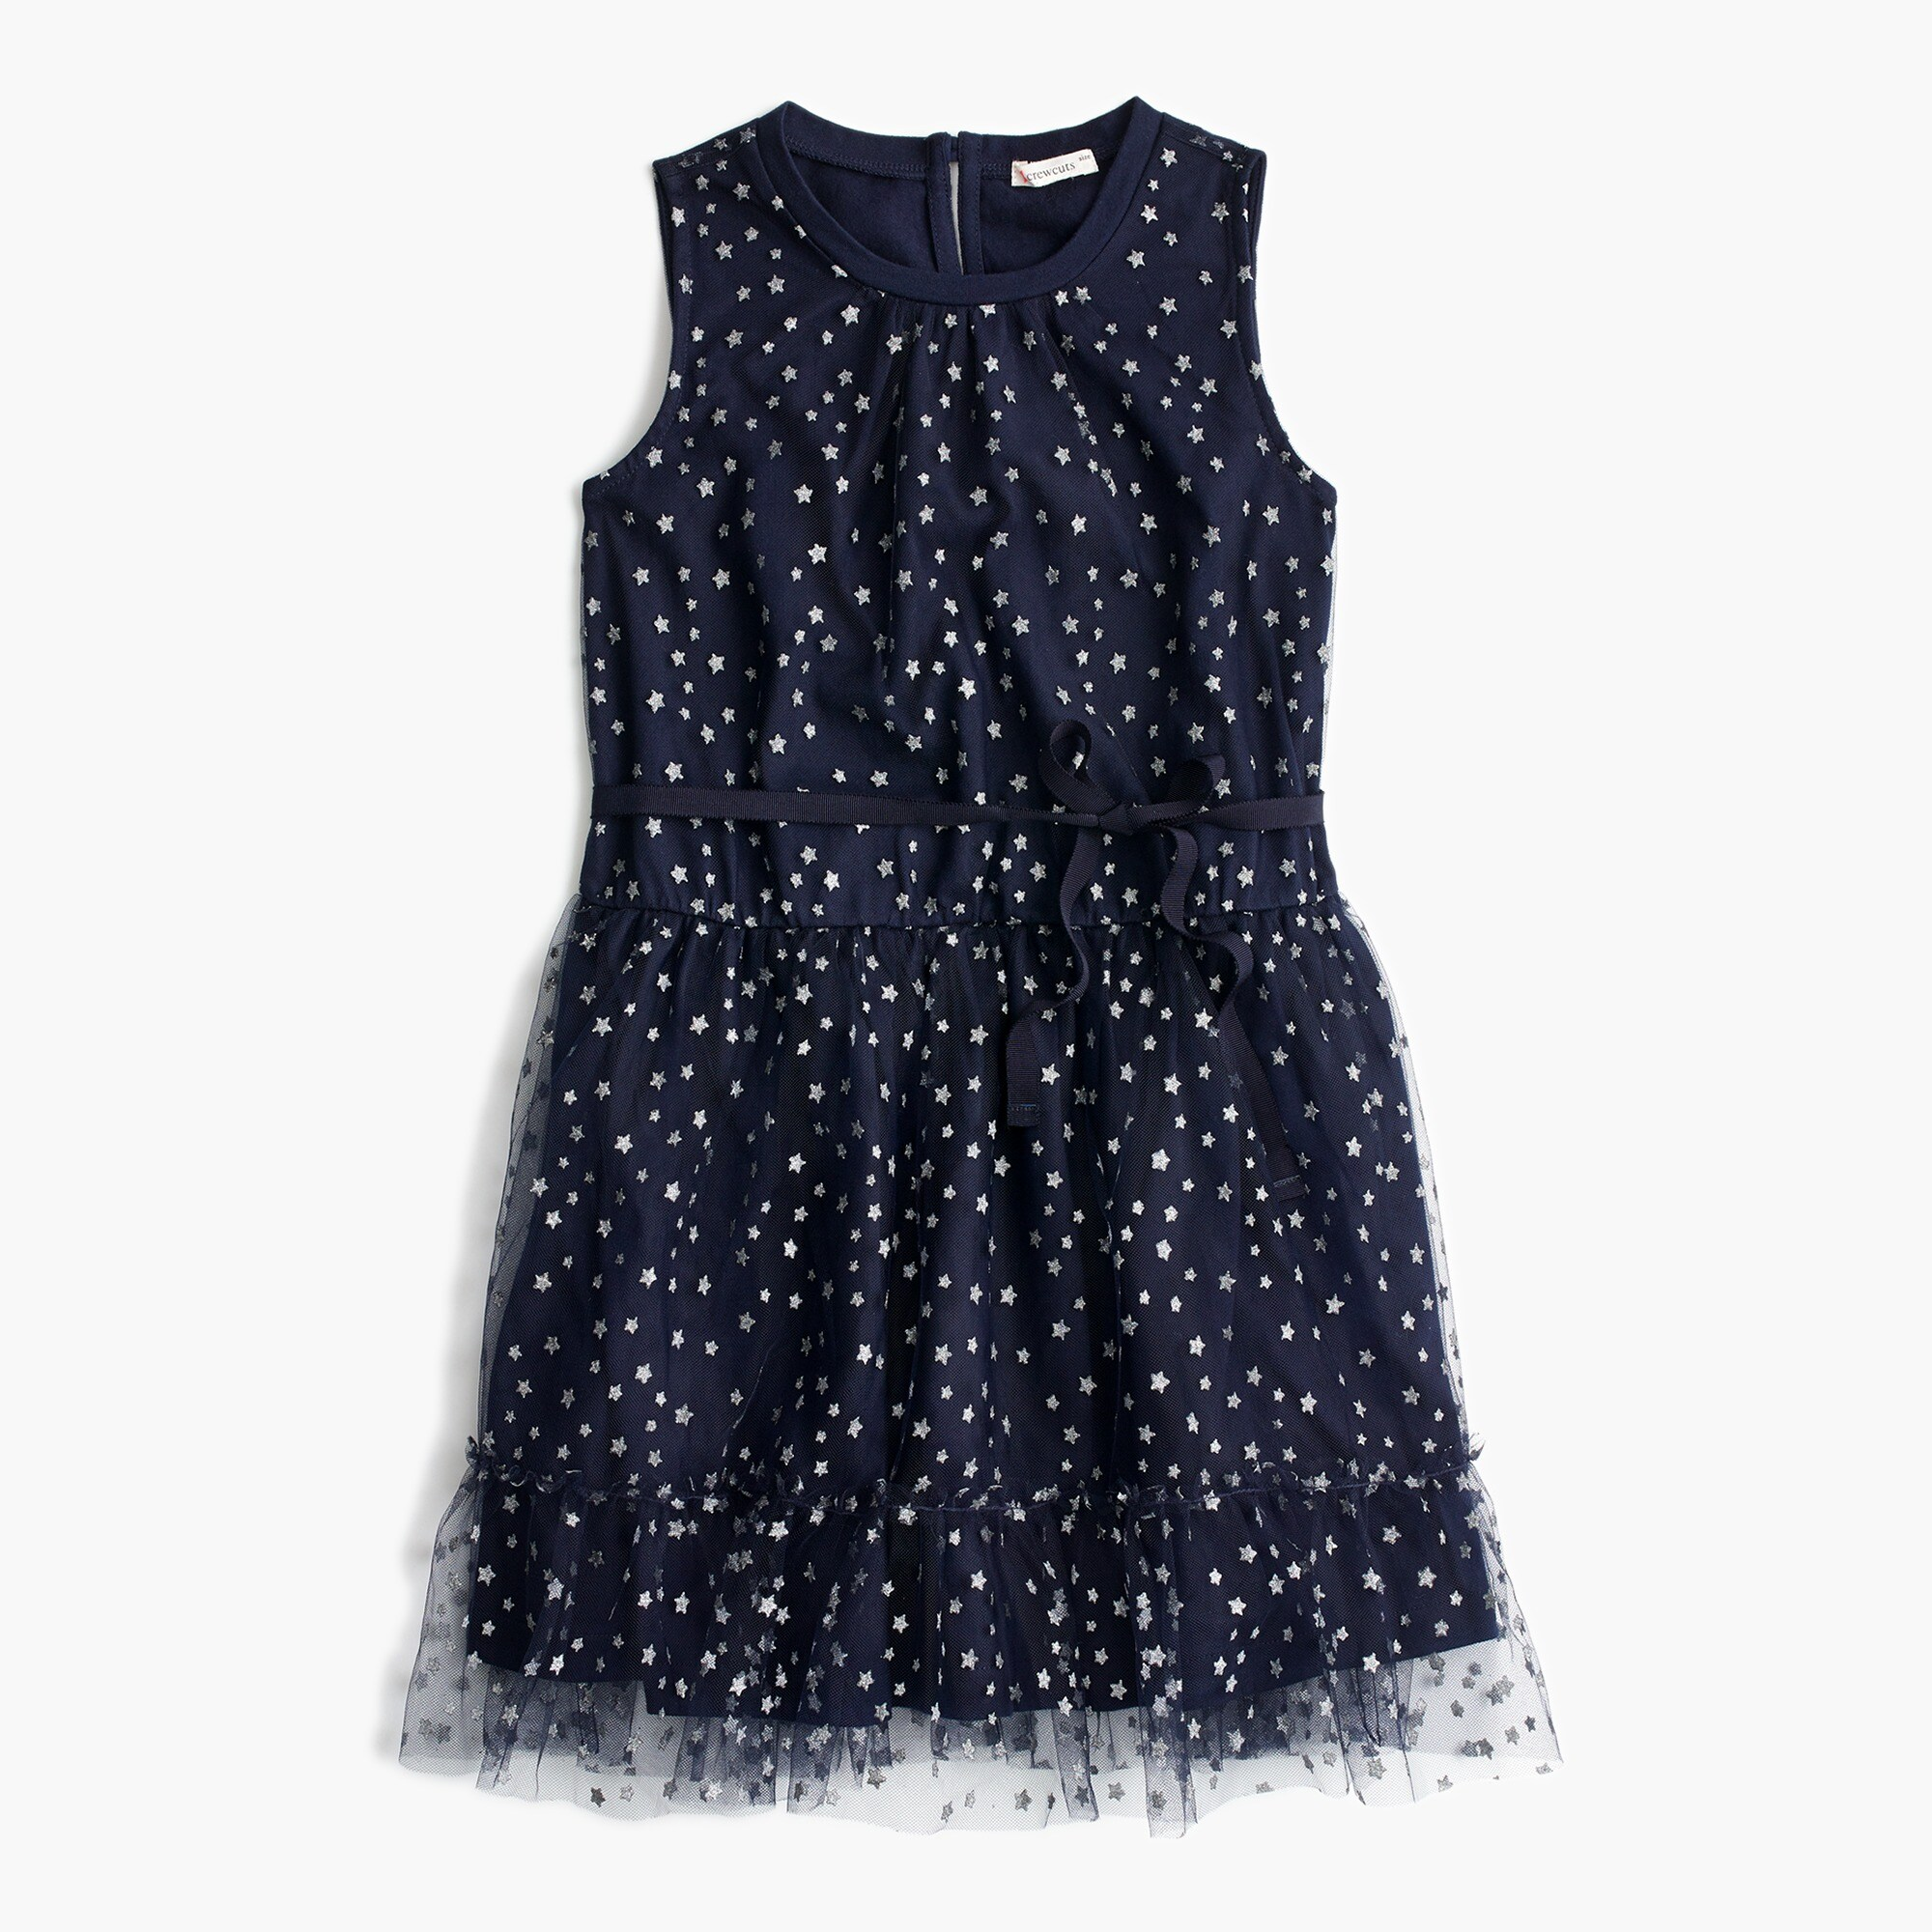 Girls' tulle dress in star print girl dresses c